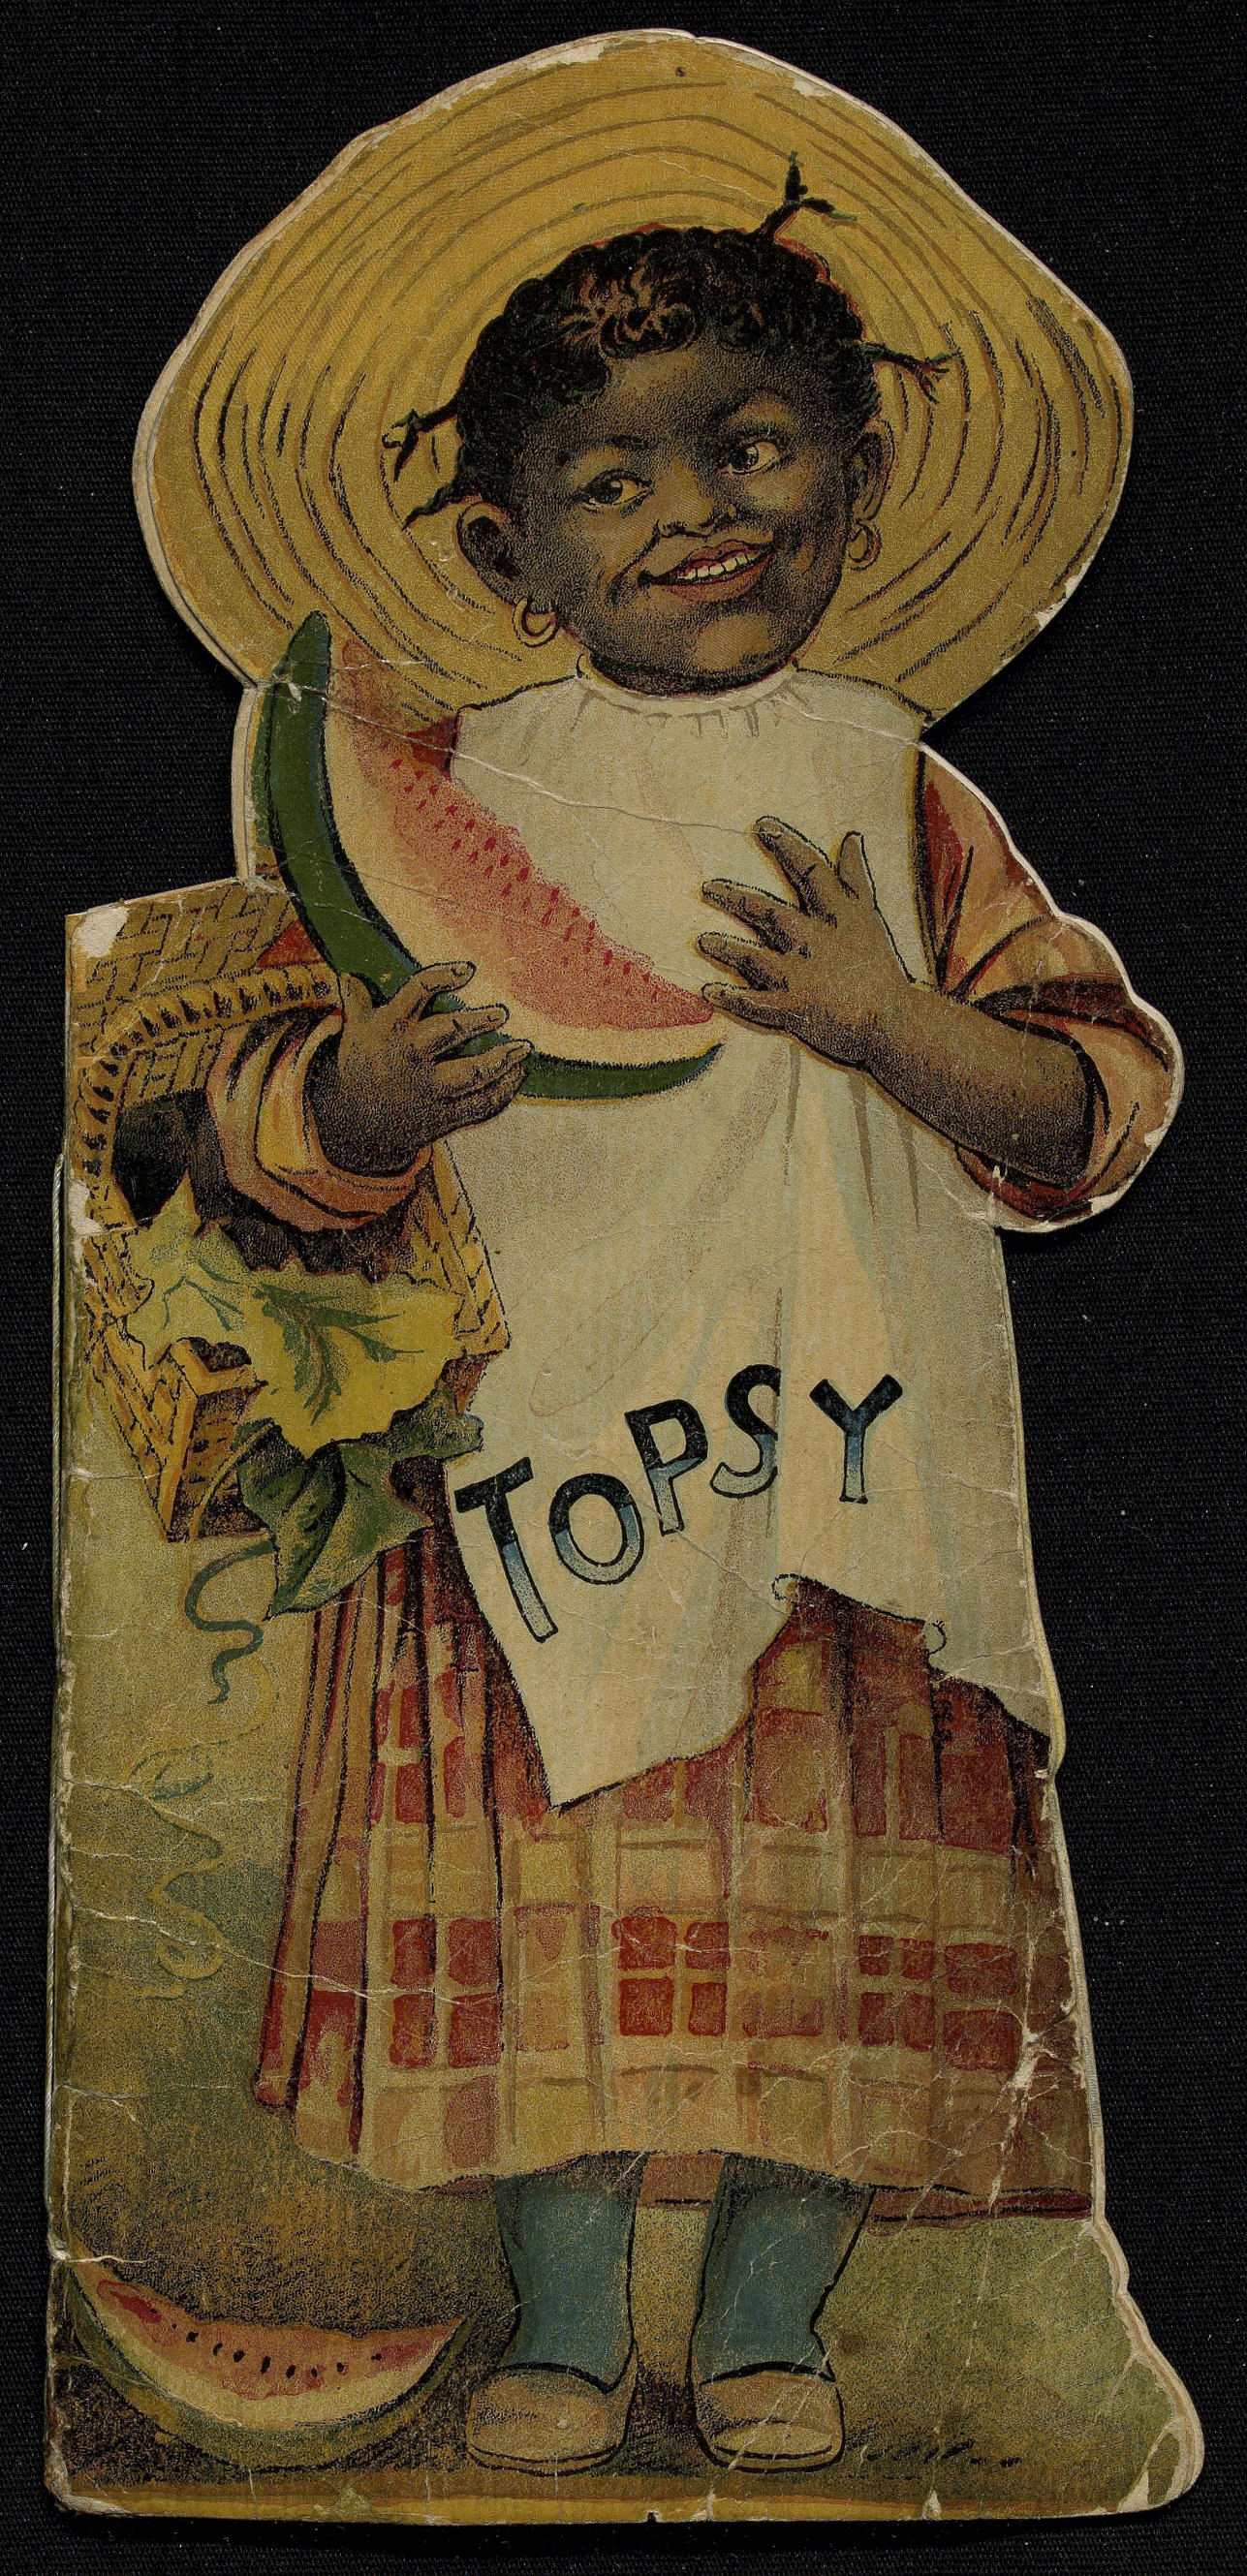 Topsy, c.1894-1914. Content compilation © 2020, by the American Antiquarian Society. All rights reserved.